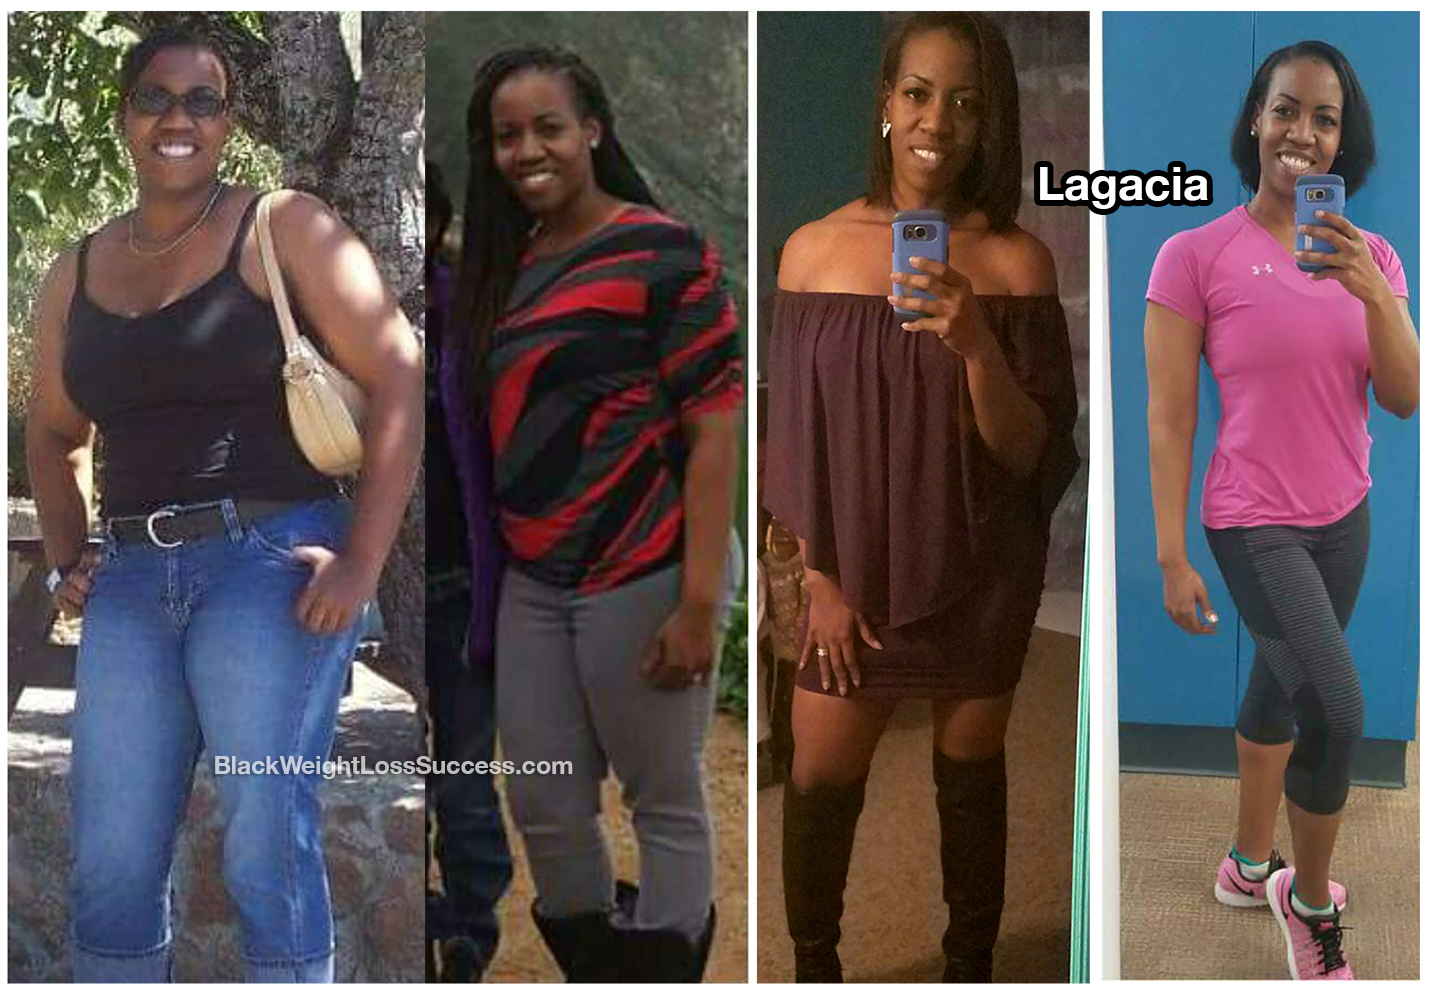 lagacia before and after